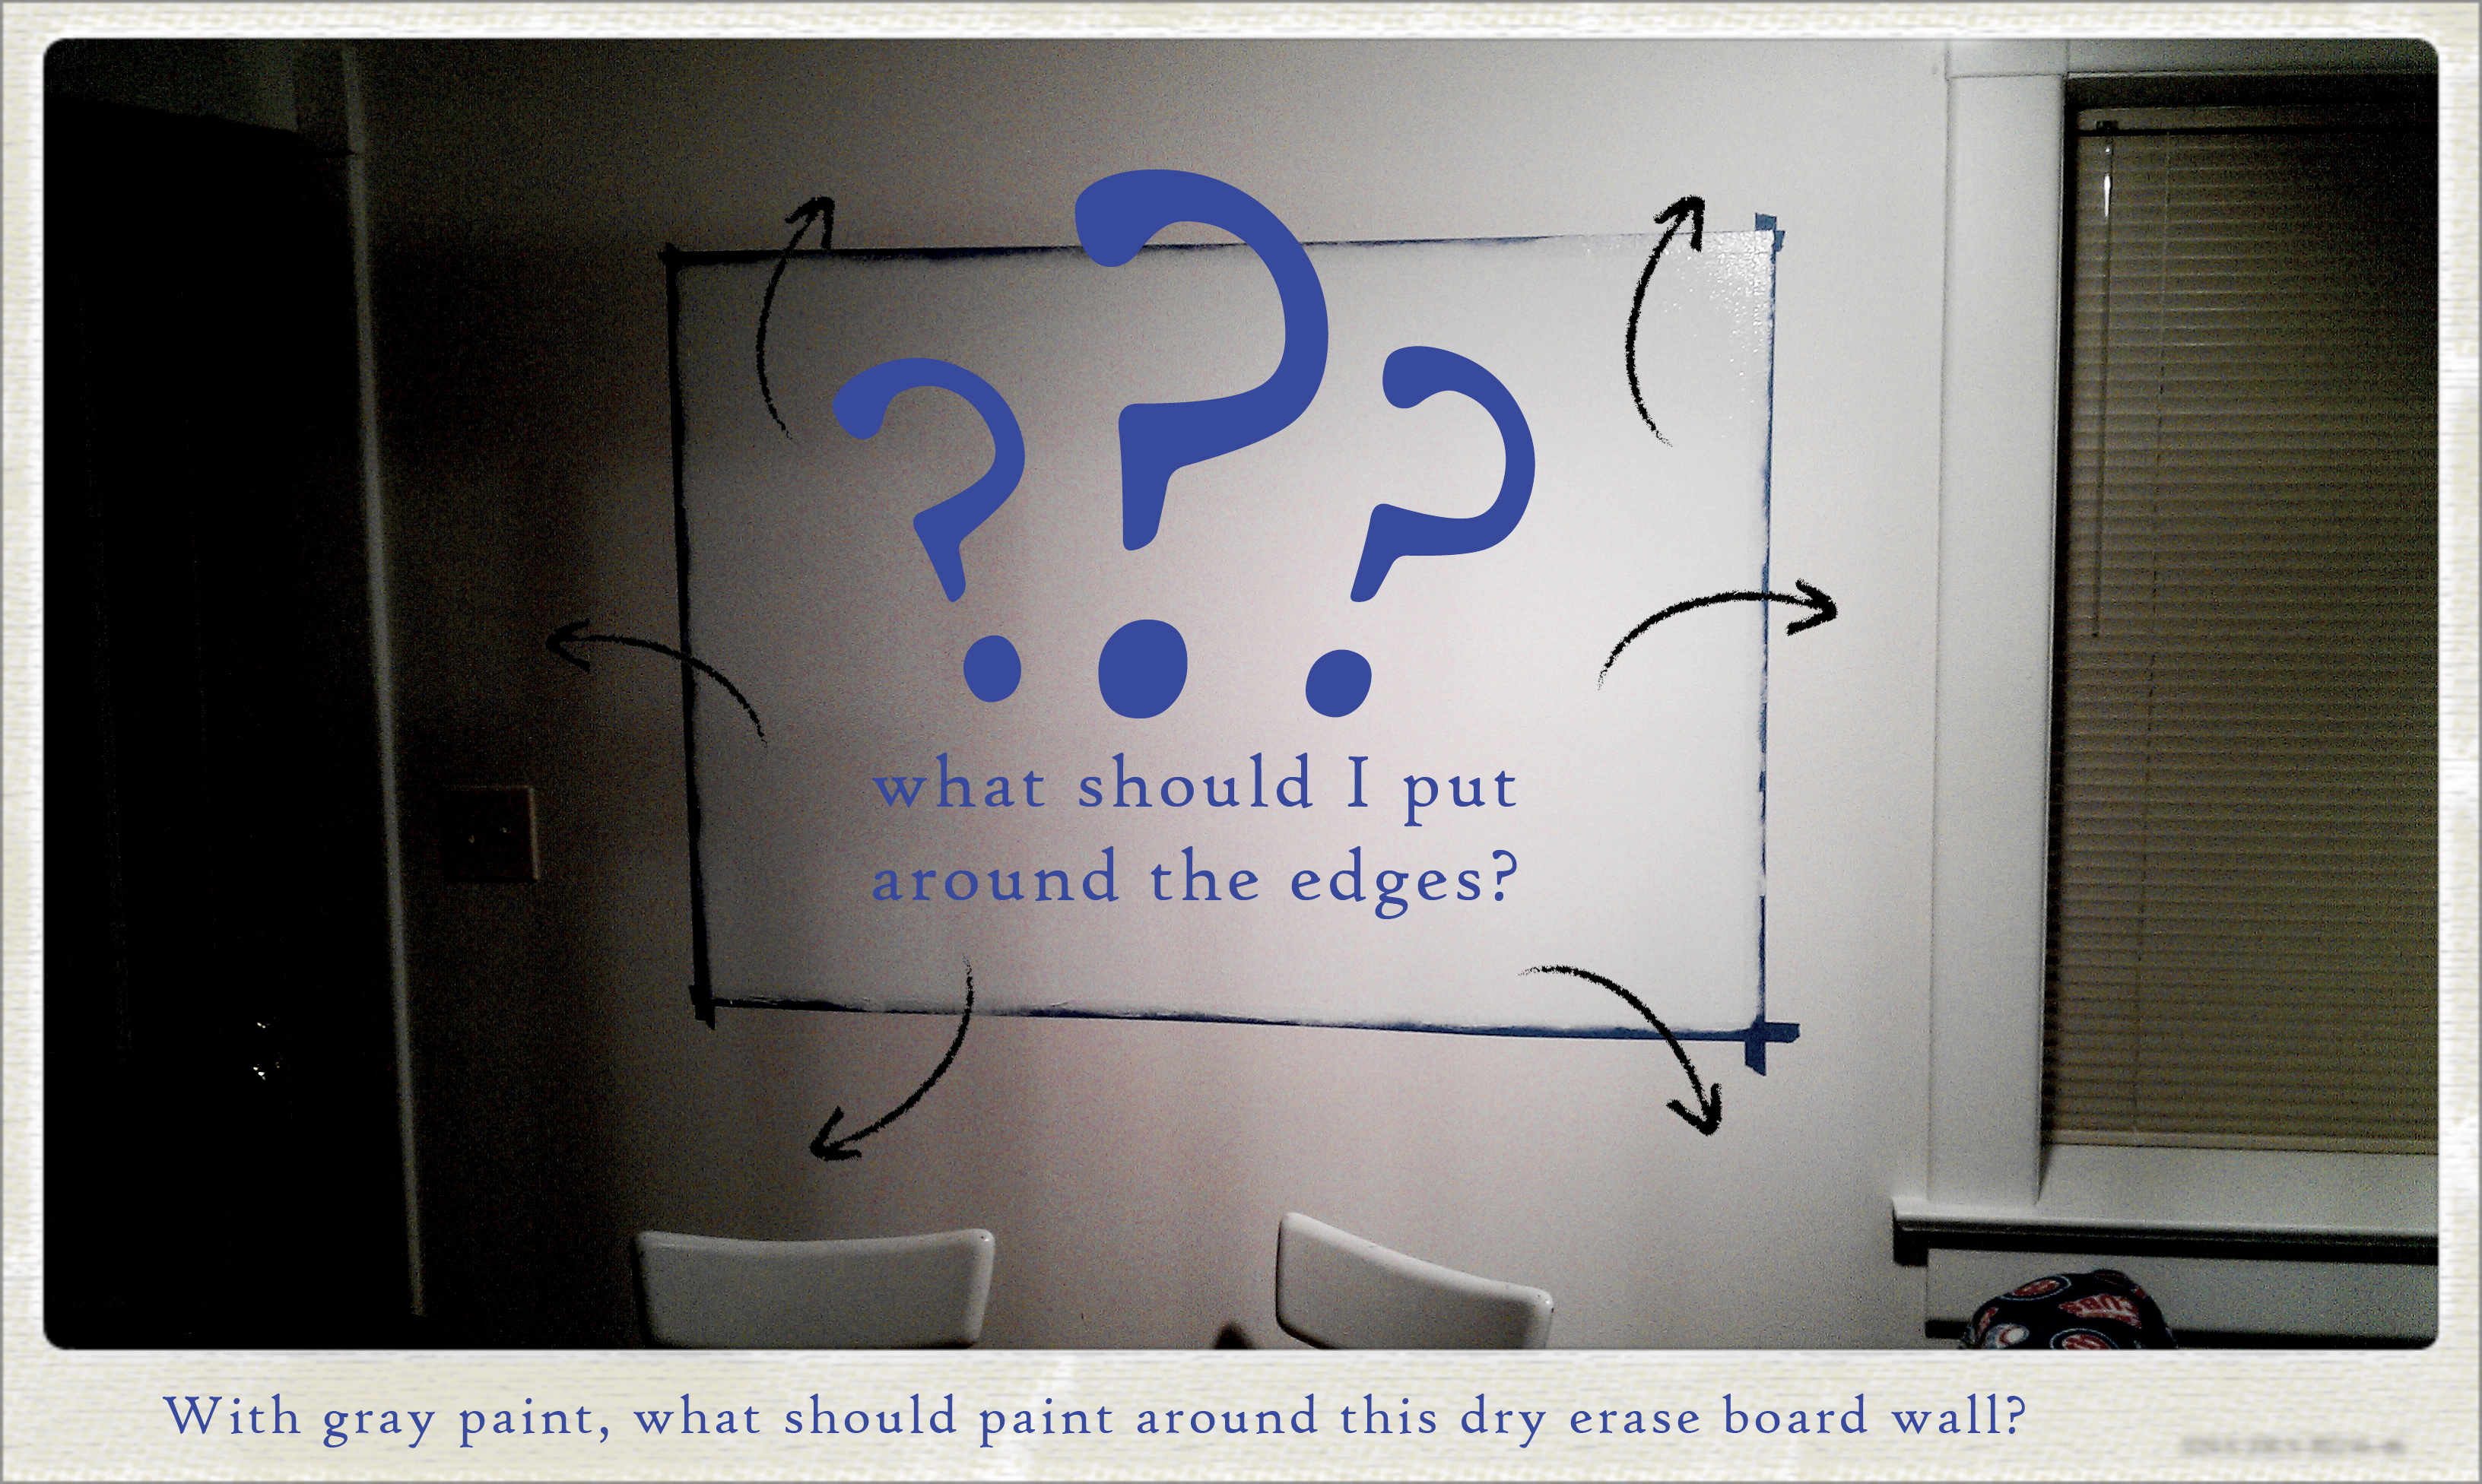 dry erase paint wall idea suggestions - Dry Erase Board Paint